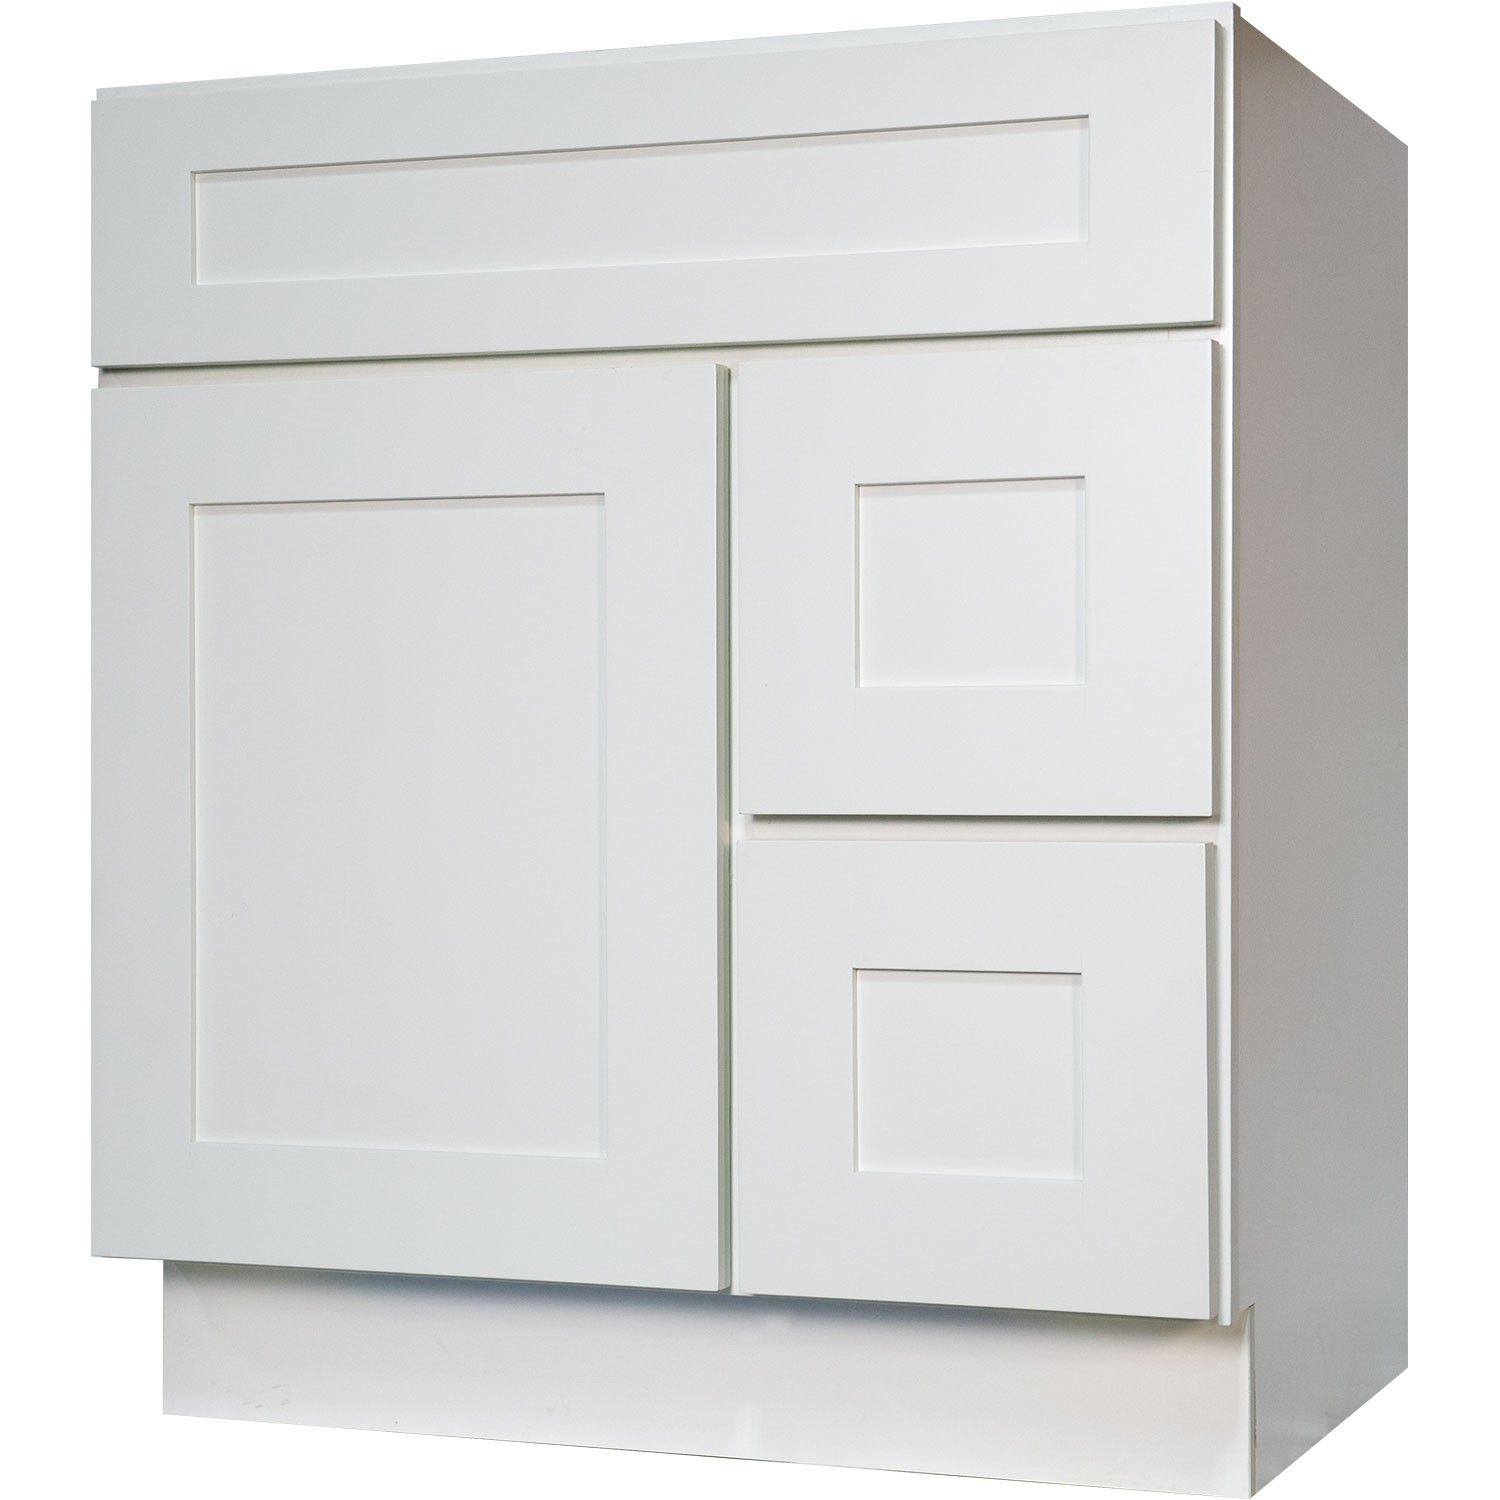 Images Photos  Inch bathroom vanity cabinet in solid wood Shaker White with soft close drawers and doors